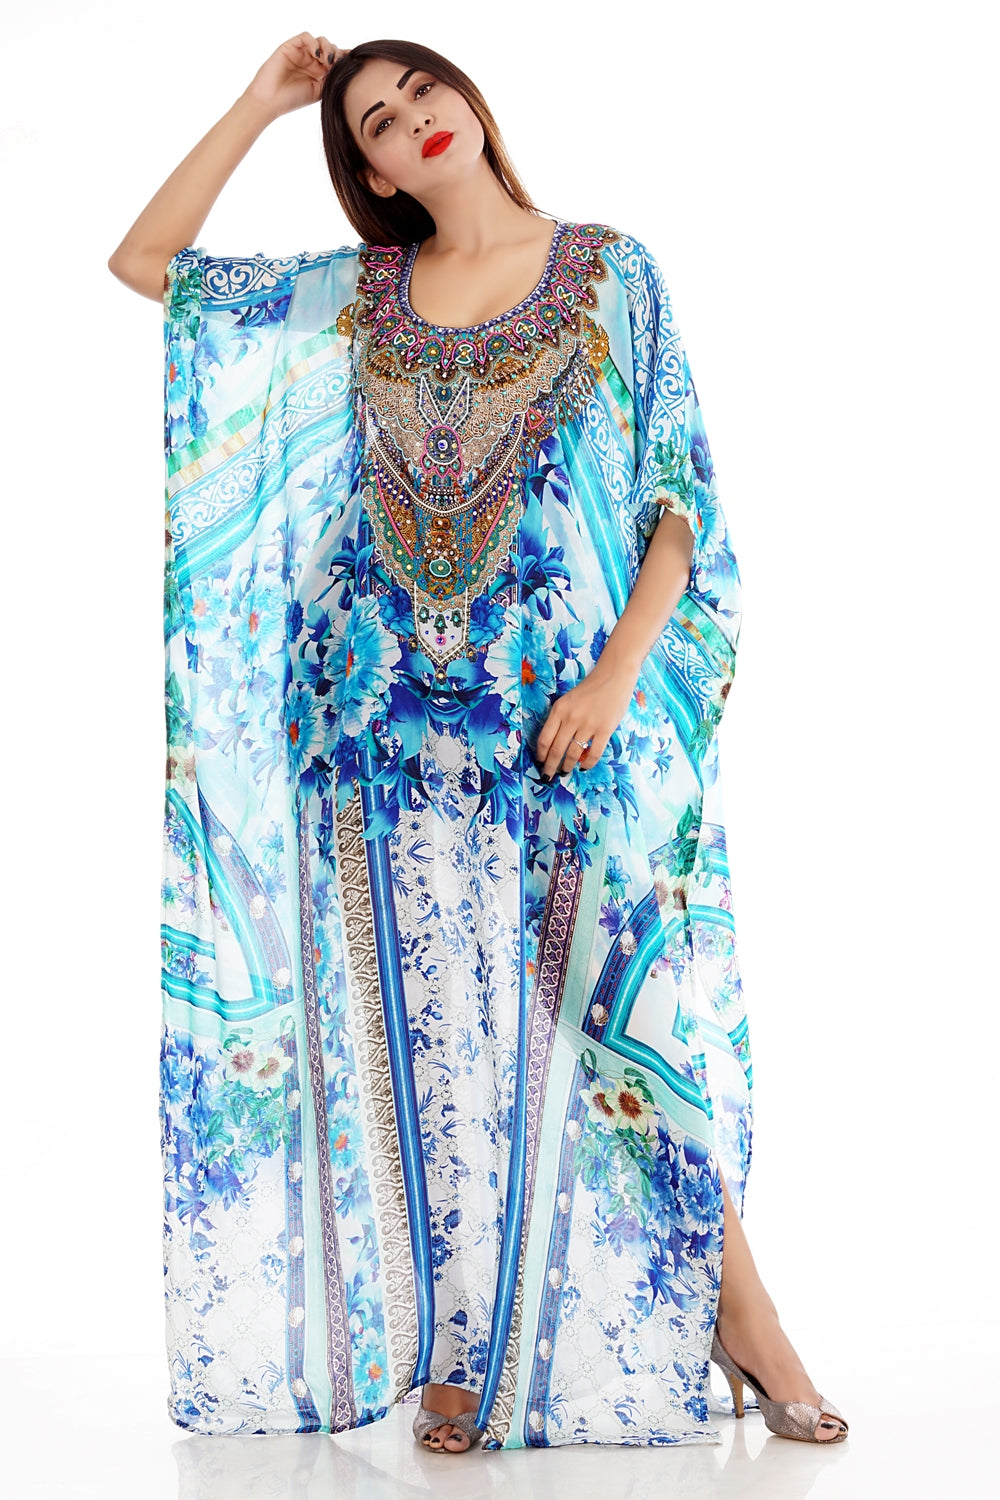 ladies kaftans for sale